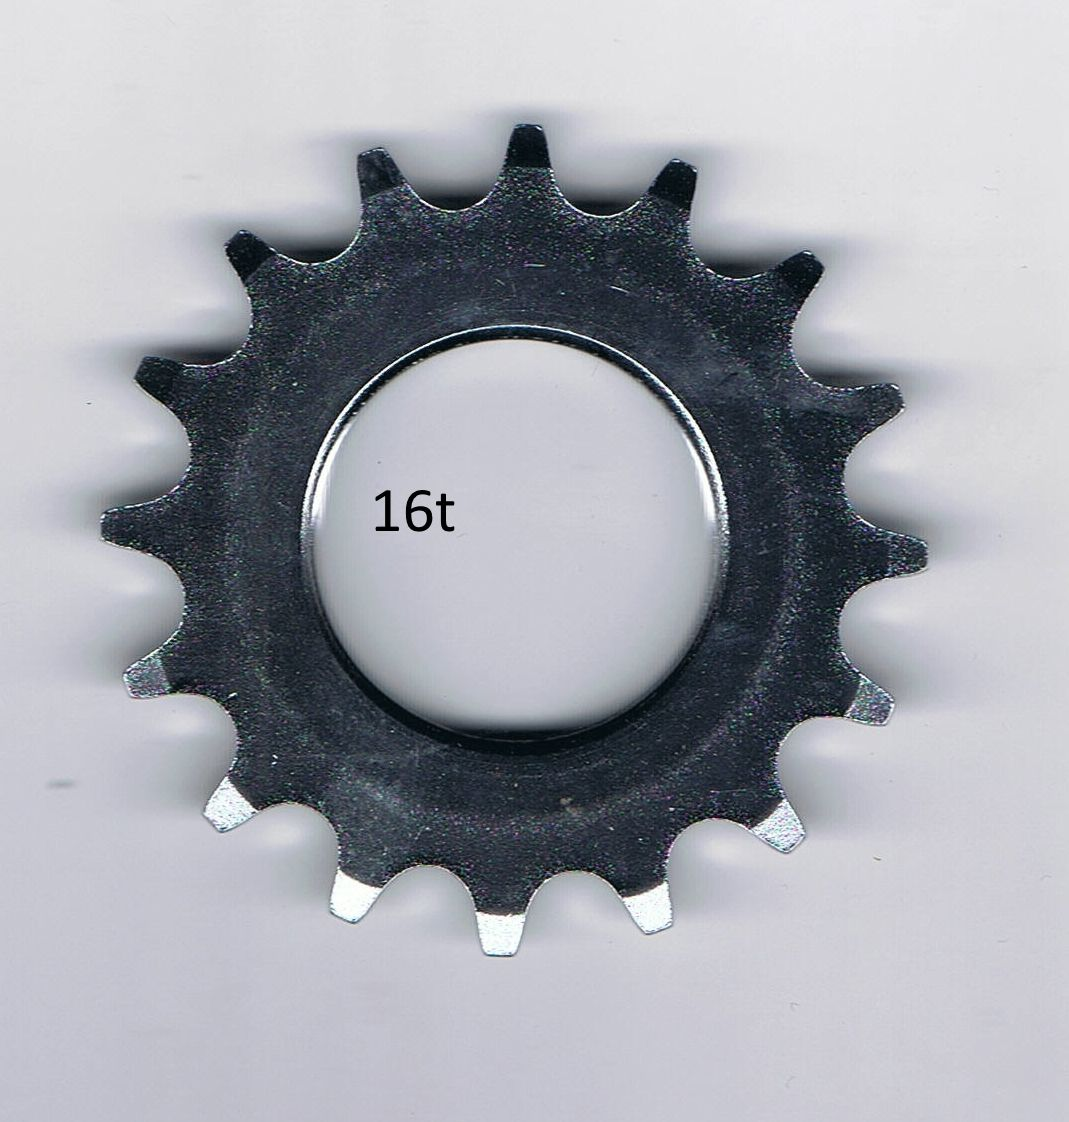 AMBROSIO FIXED SPROCKET  1/8 PITCH  Ratio 16t